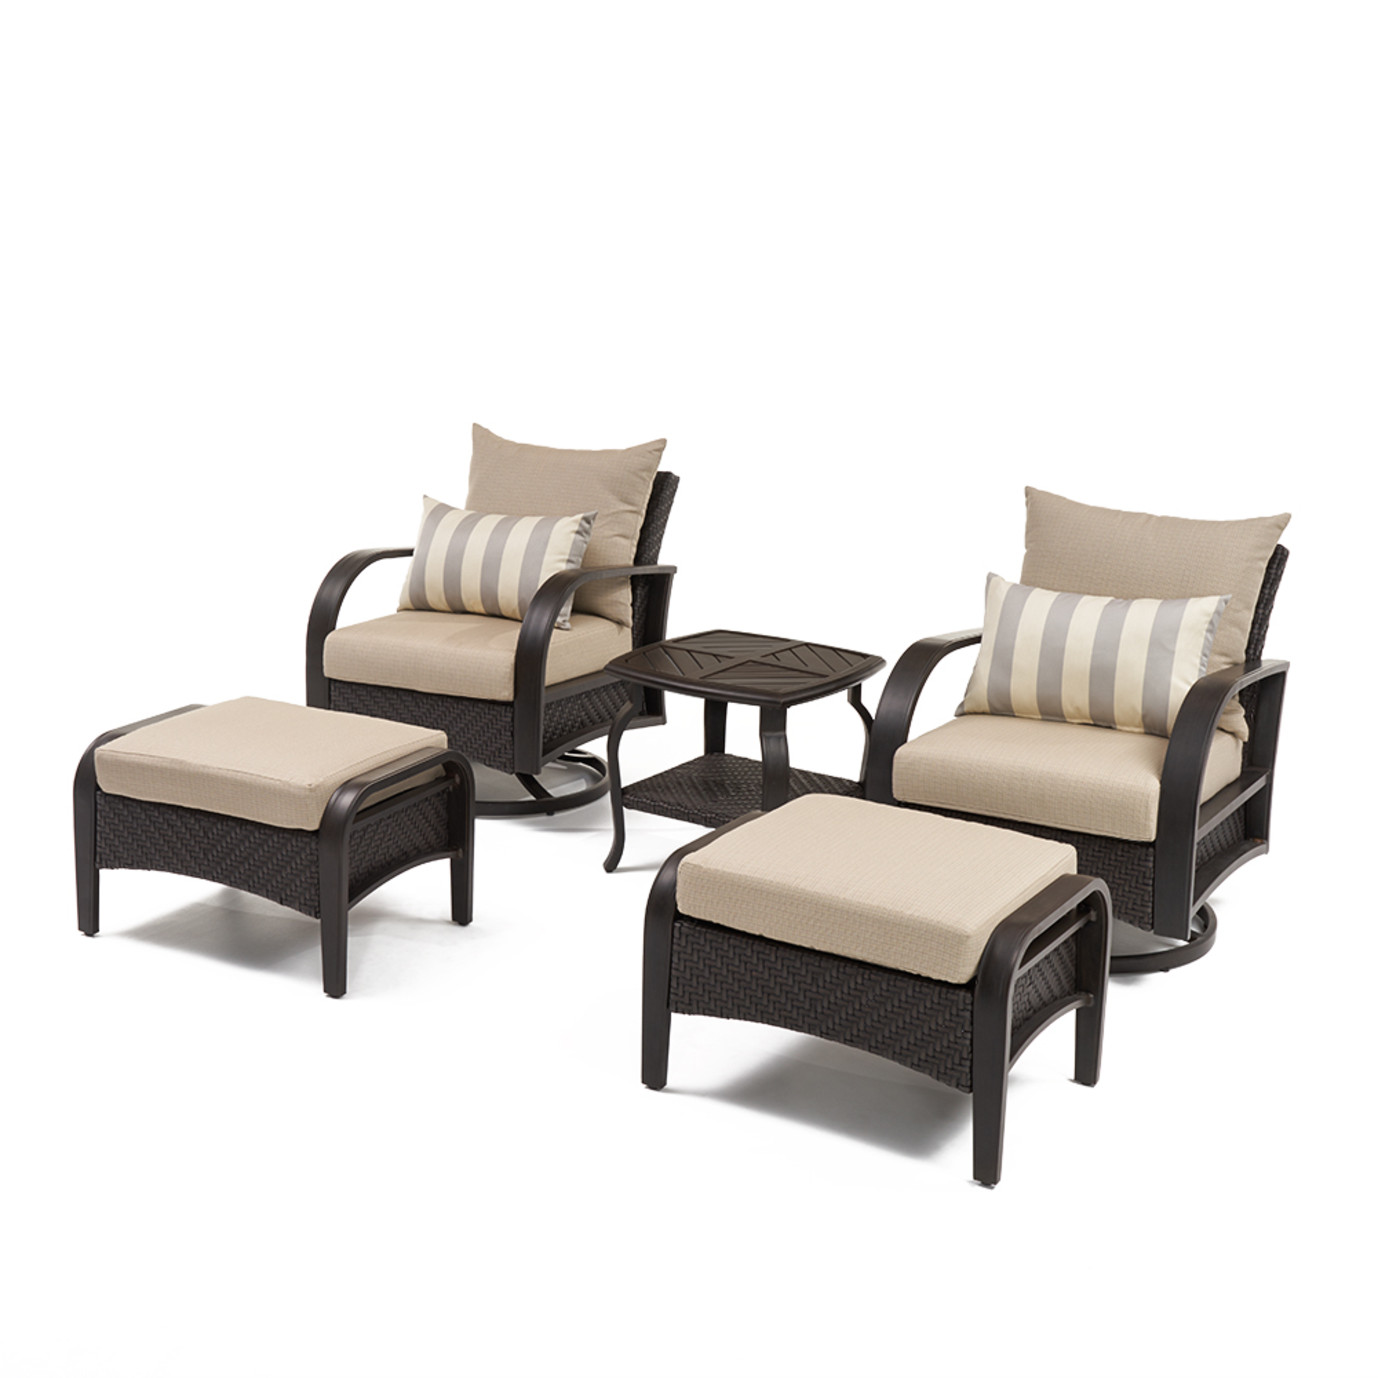 Barcelo™ 5pc Motion Club & Ottoman Set - Slate Grey